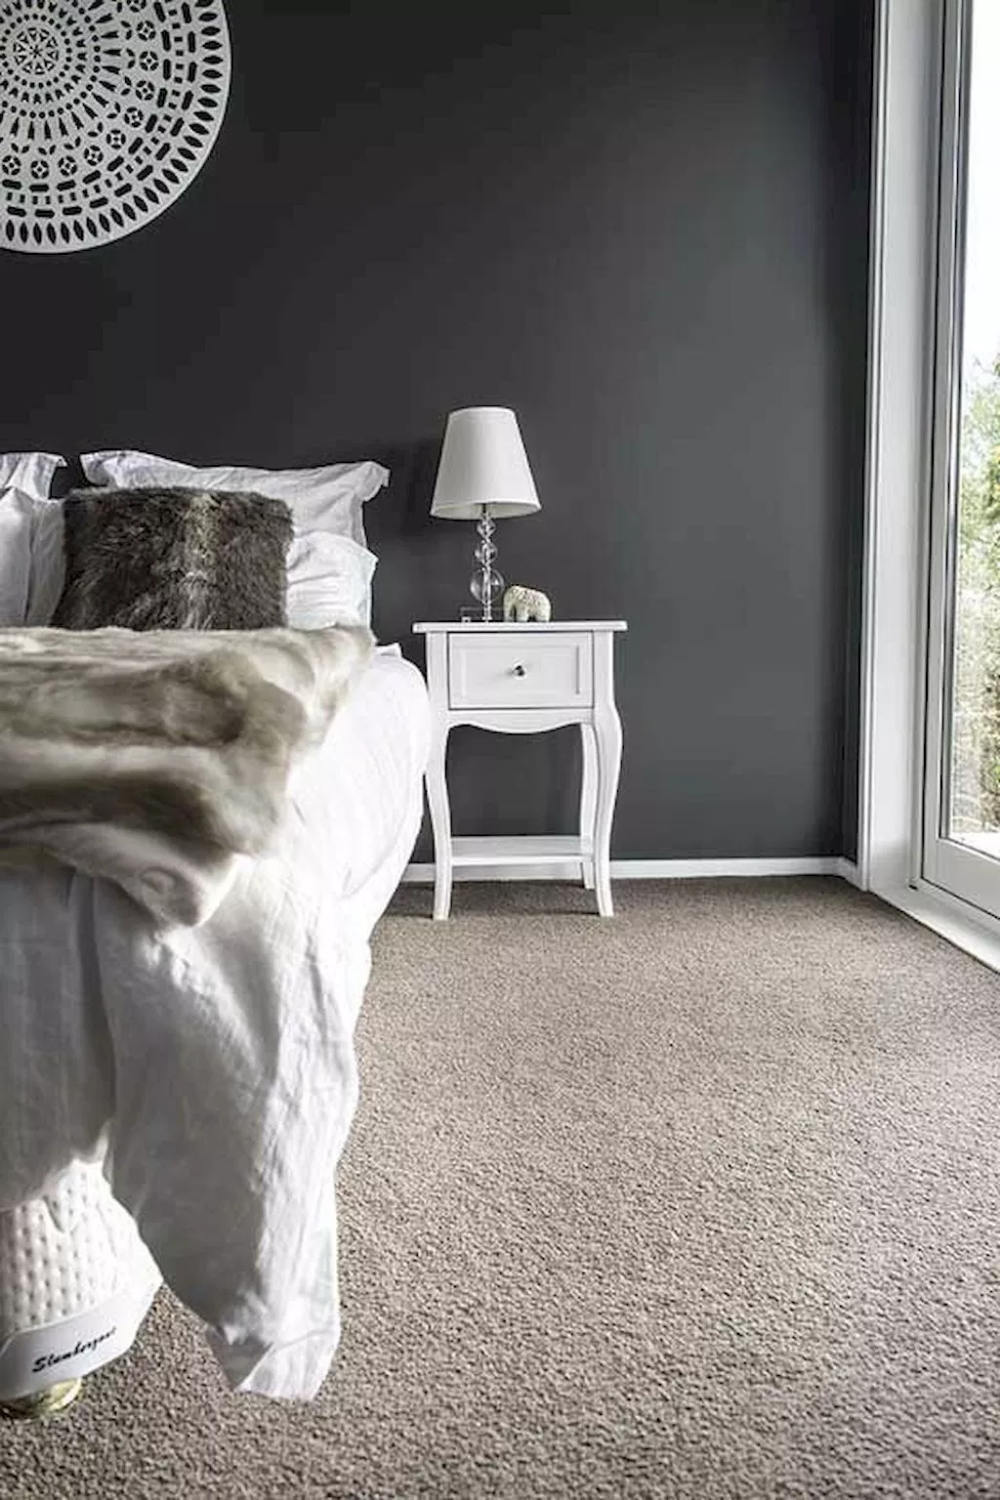 Affordable Minimalist Bedroom Ideas With Ultra Cozy Bed Designs Part 8 Shairoom Com Bedroom Carpet Colors Simple Bedroom Bedroom Carpet